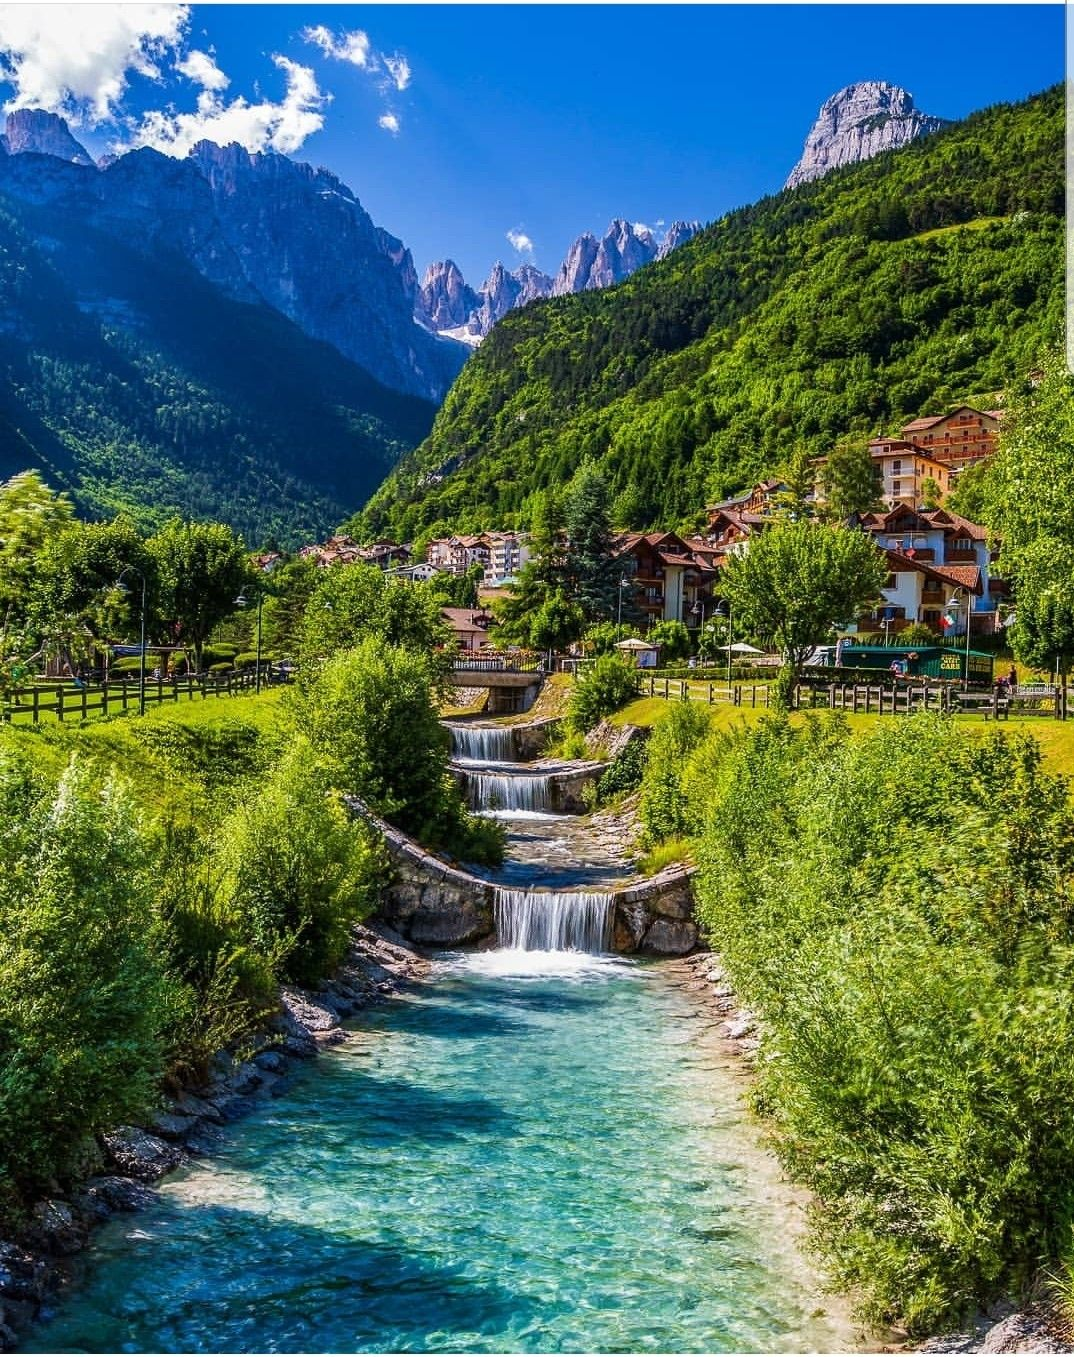 Molveno Camping Molveno Italy Travel Inspiration In 2019 Travel Nature